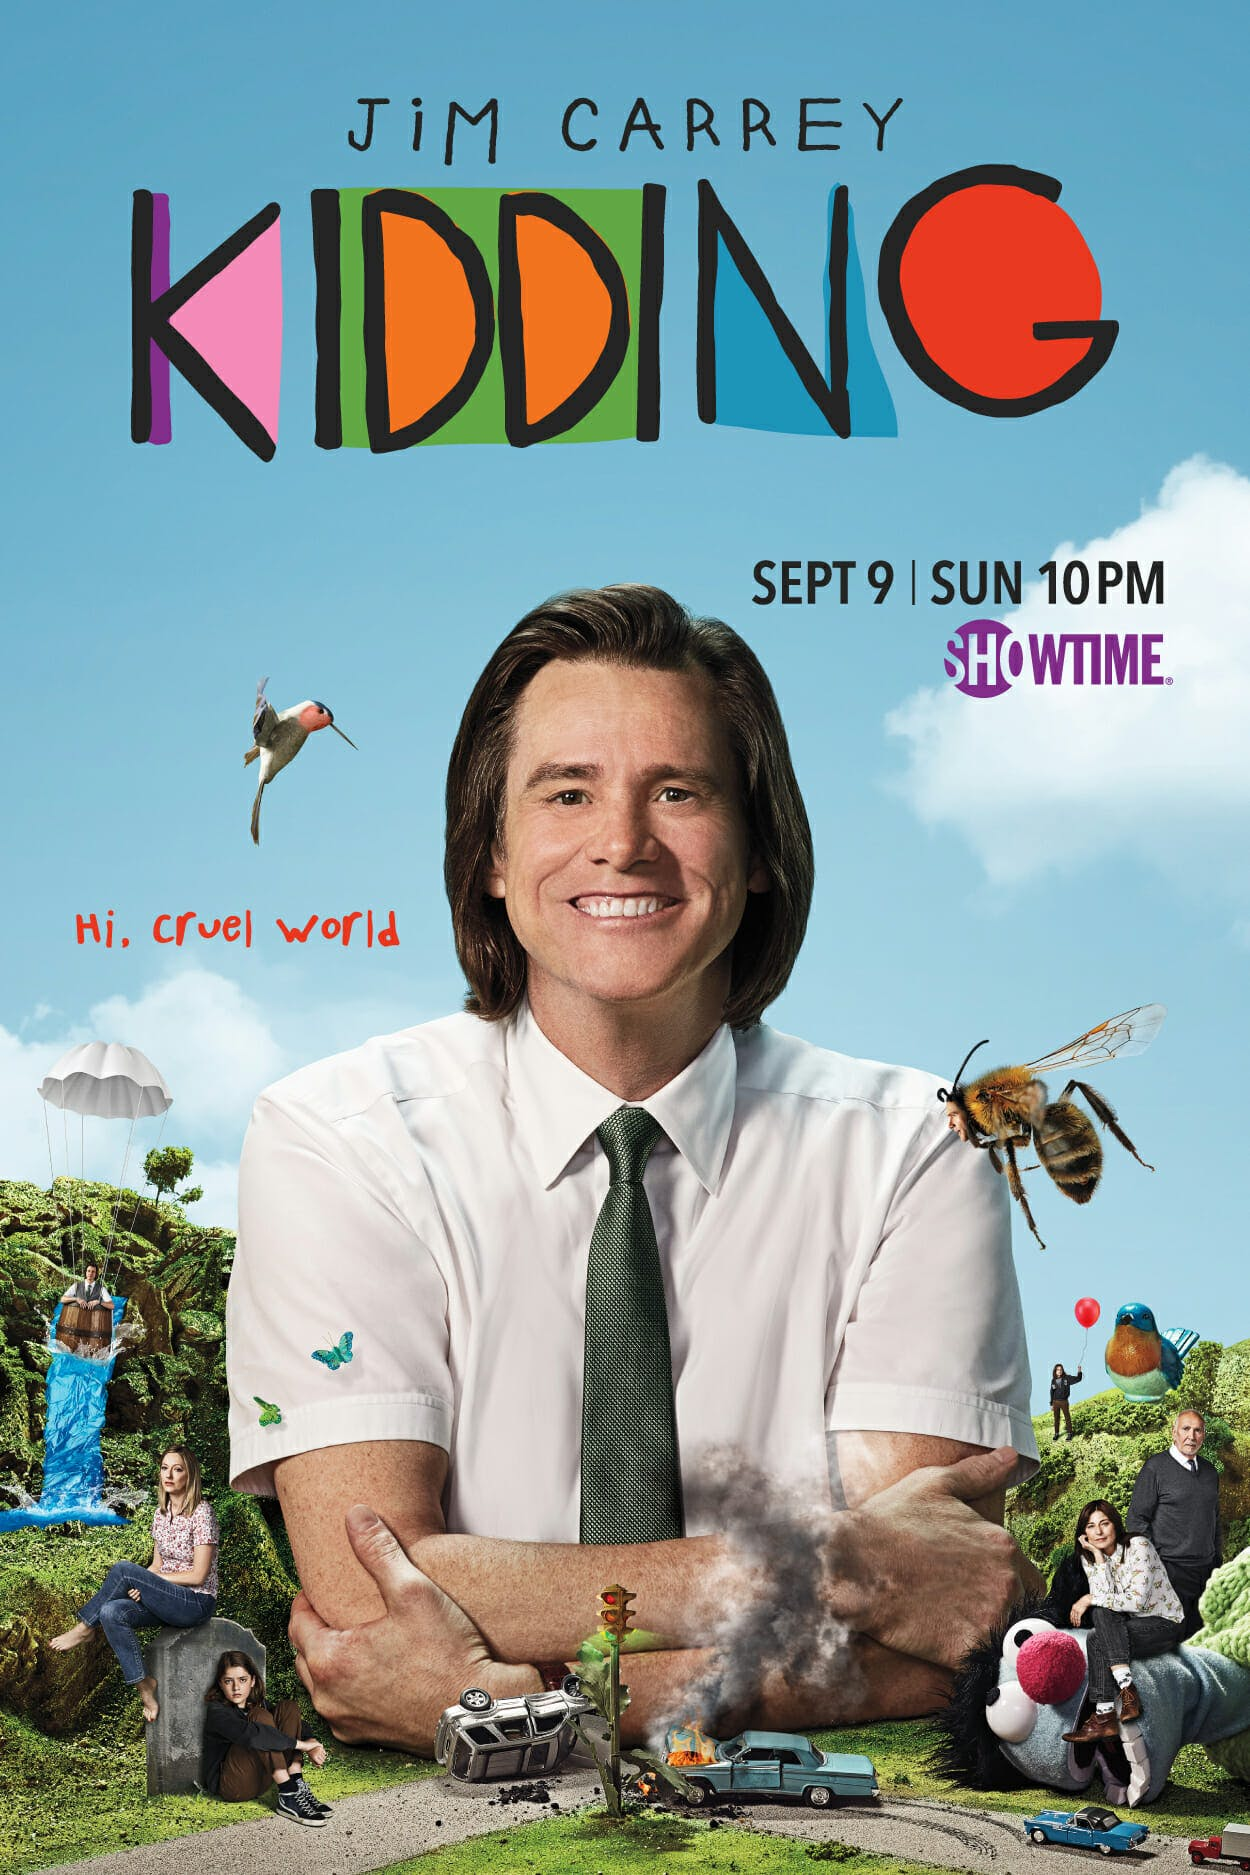 watch kidding online free on Amazon